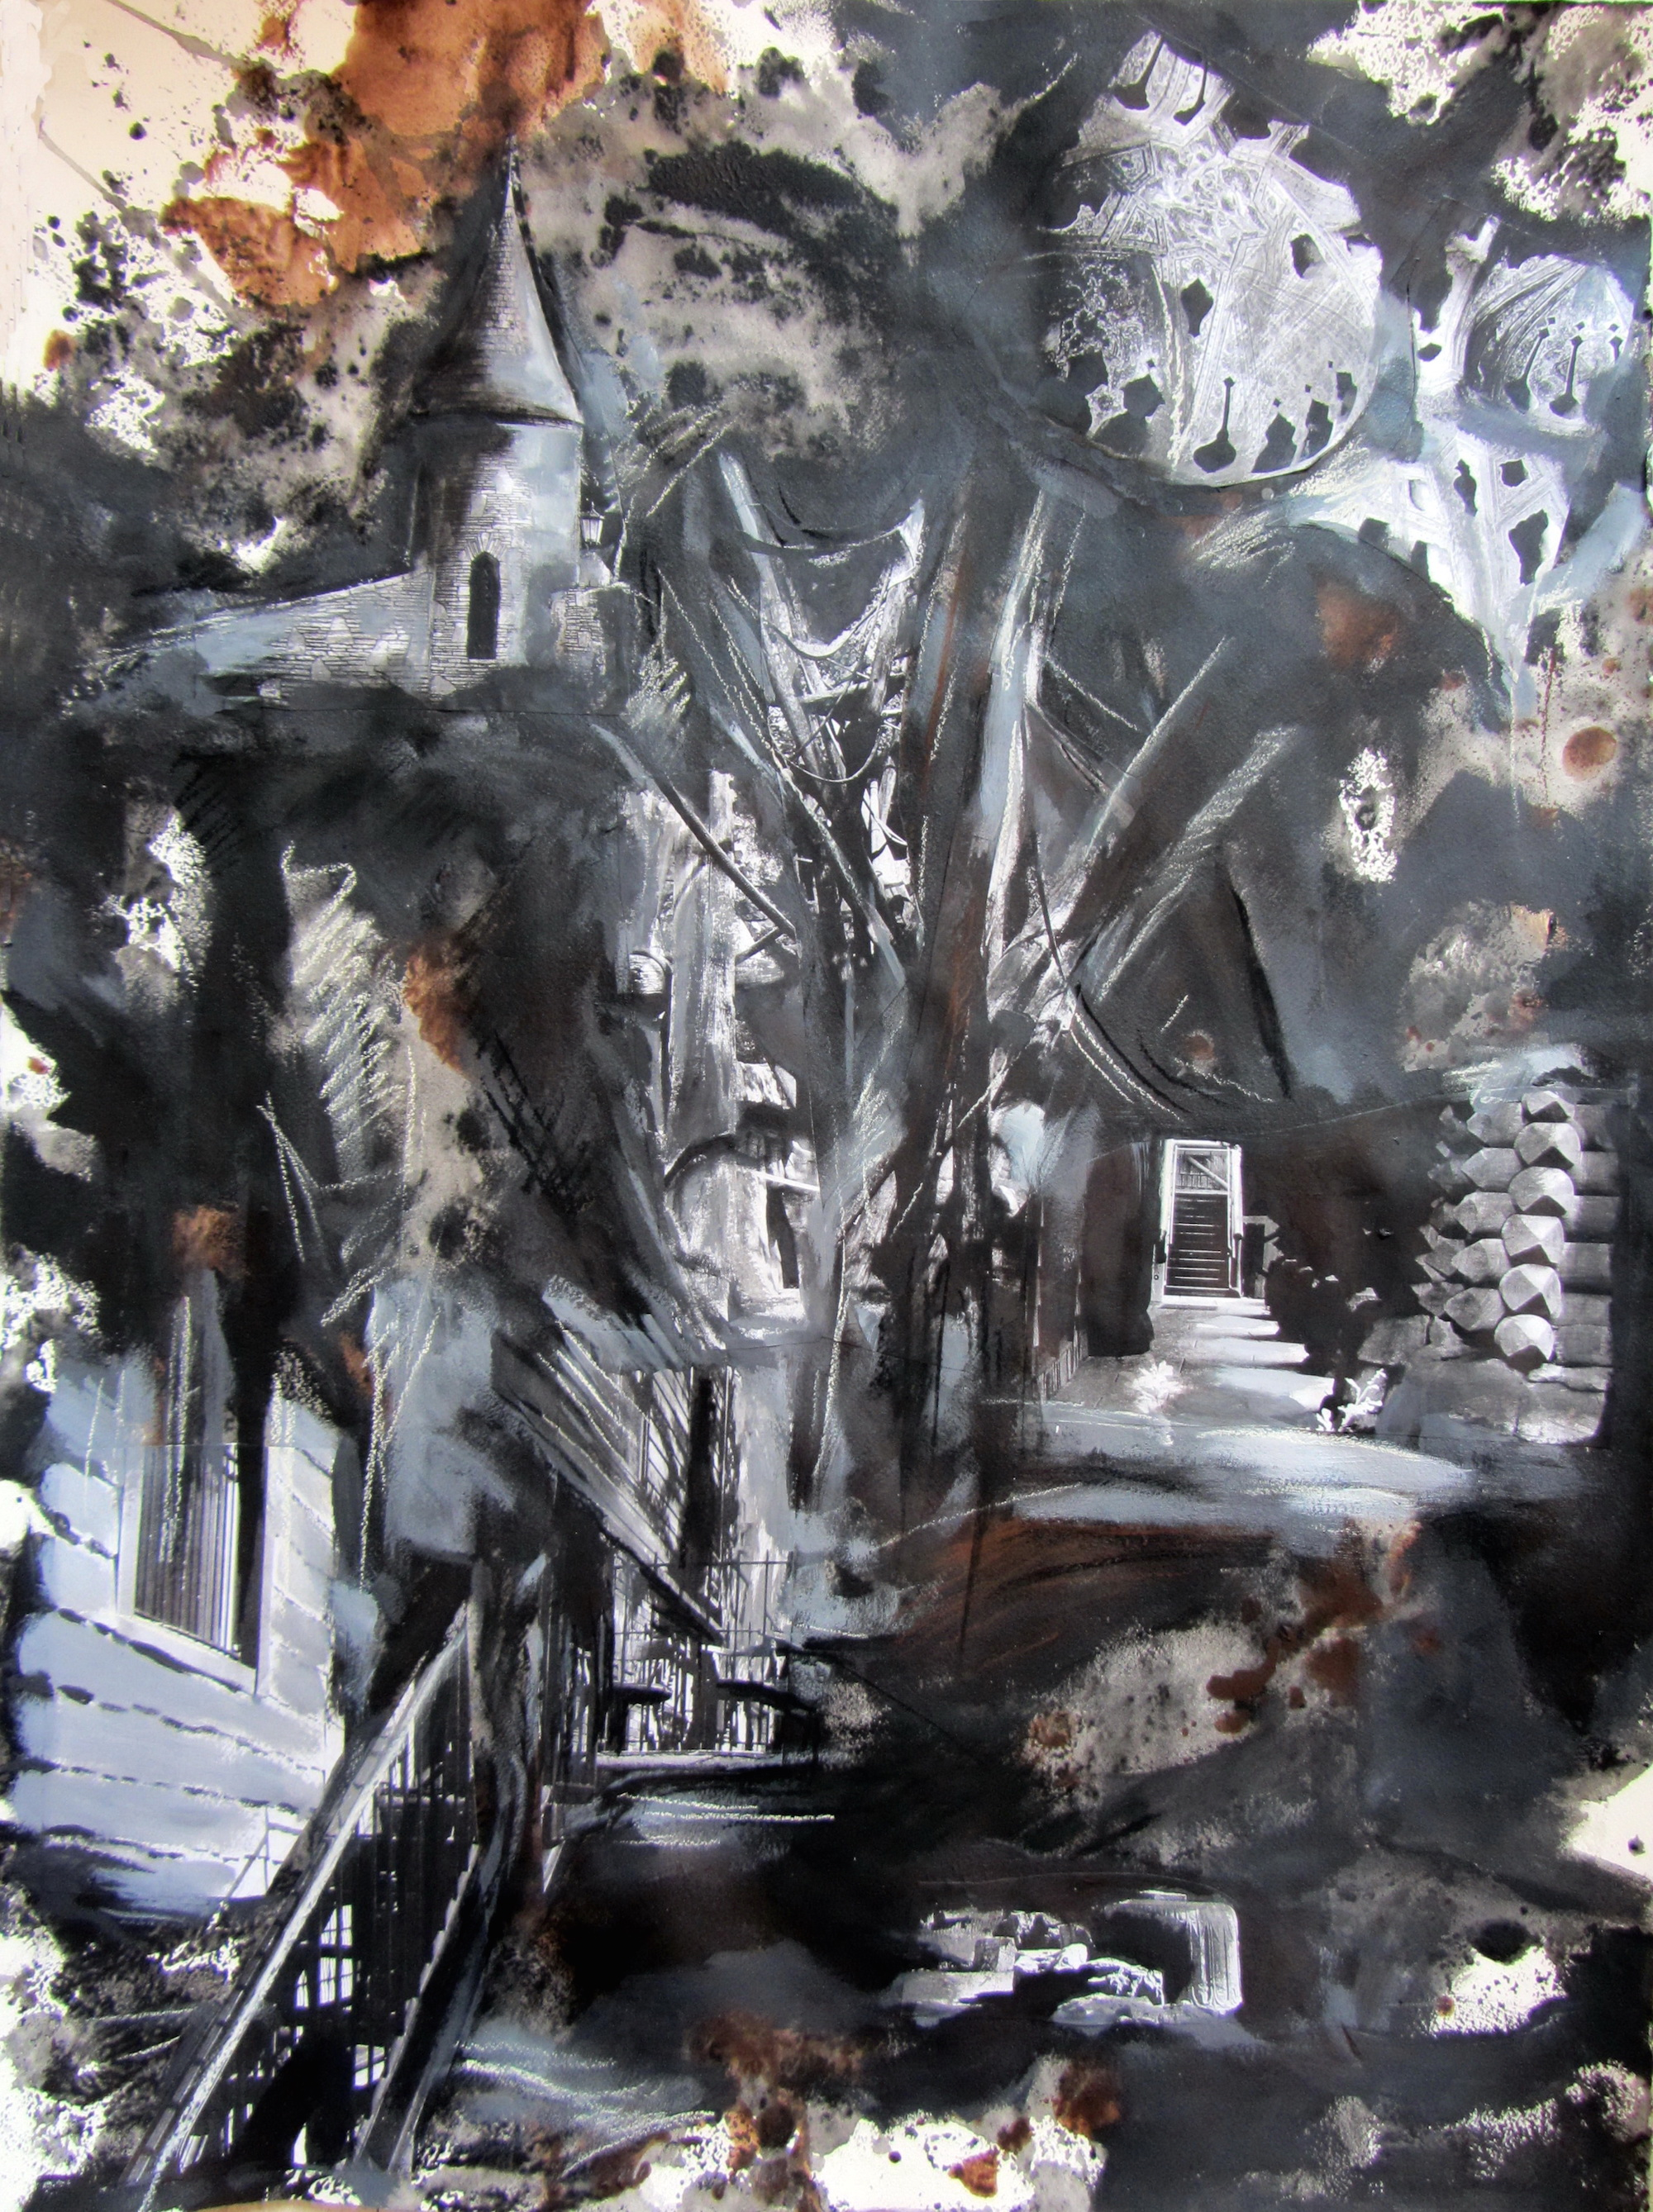 Nightview, mixed media on paper, 30.3x22 inches, 2011